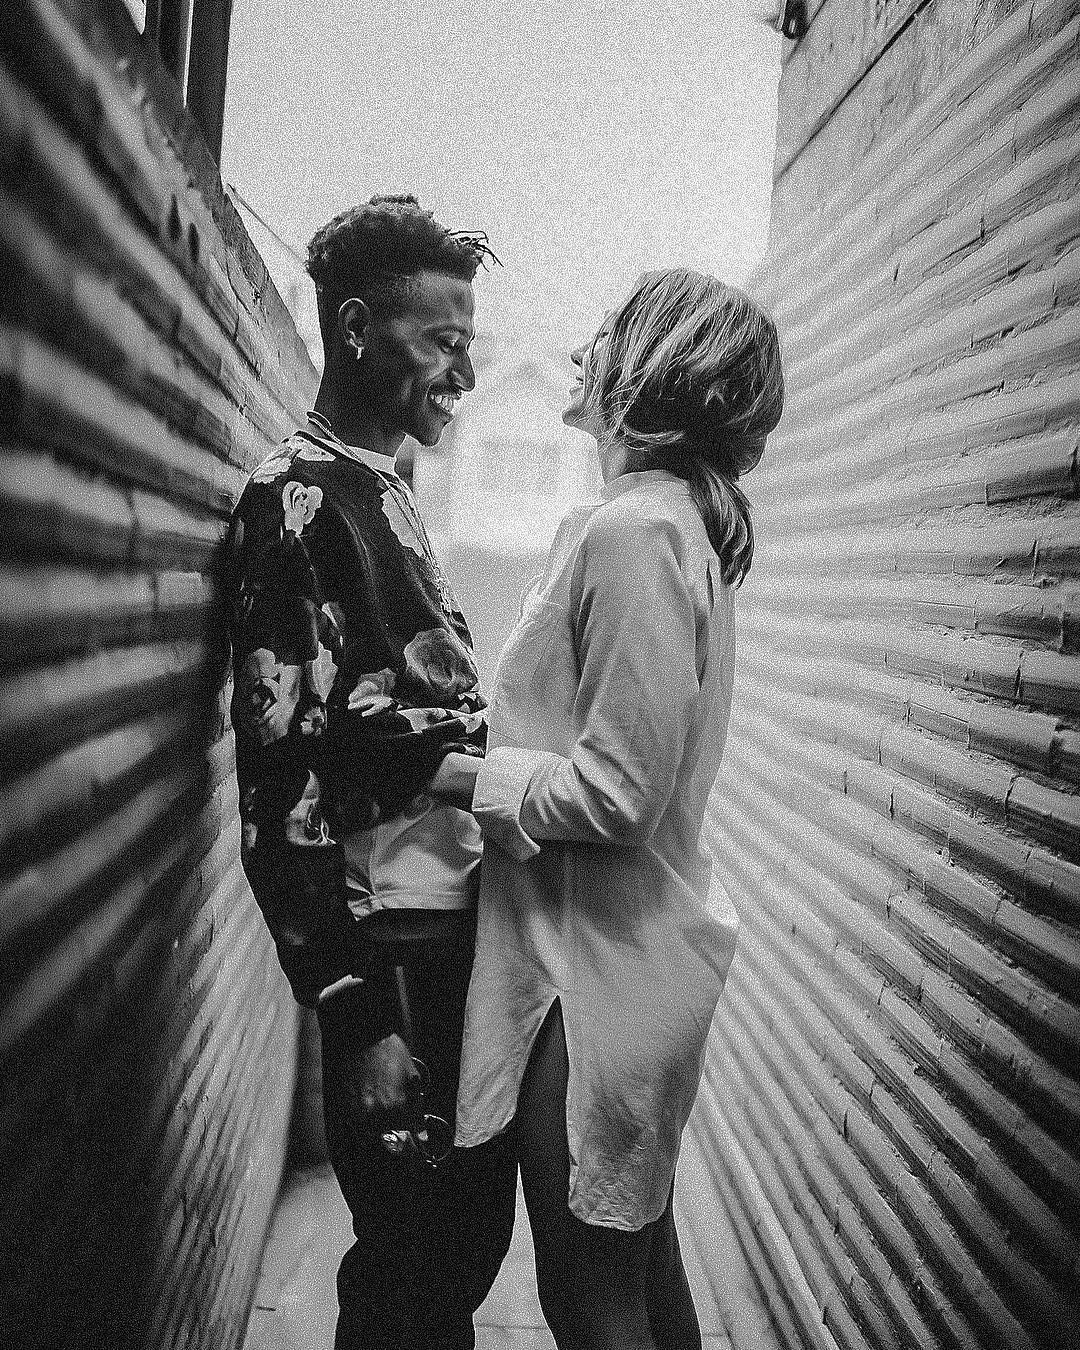 Octopizzo with his fiance having a light moment. photo credit: Instagram/octopizzo